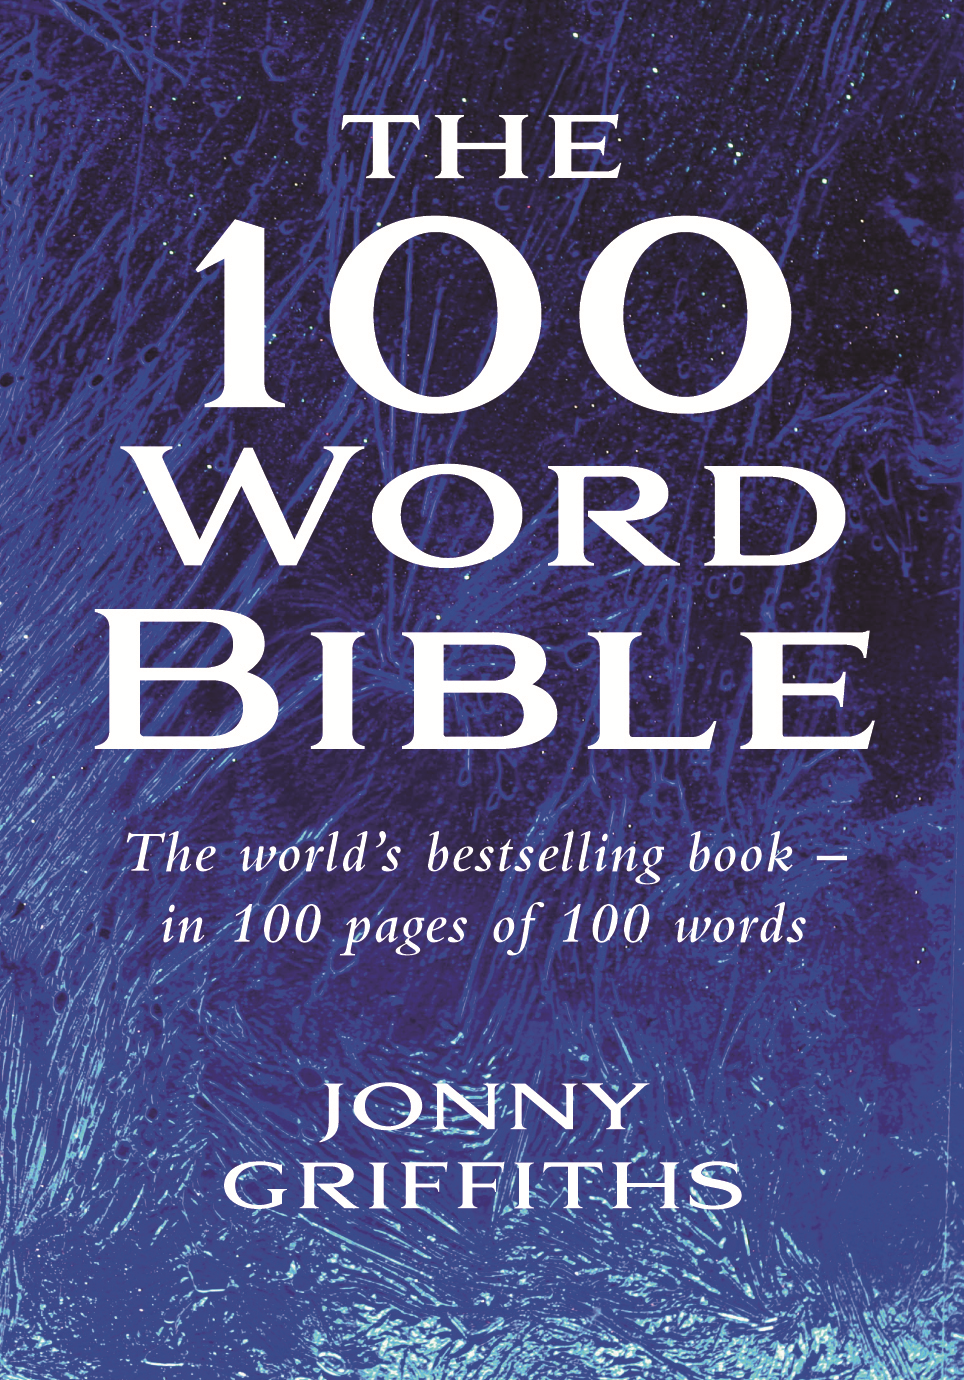 The 100 Word Bible